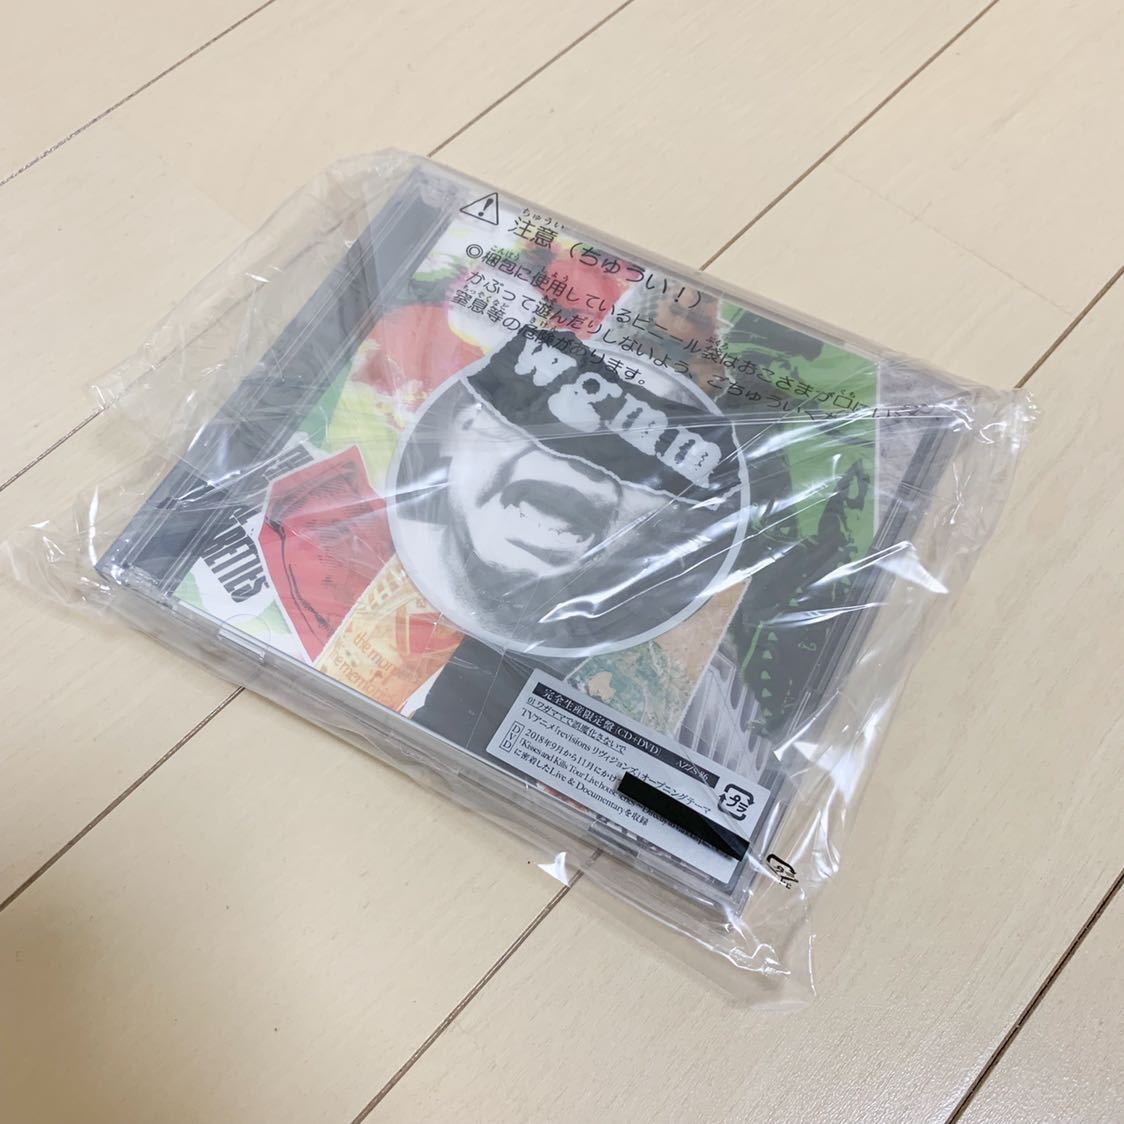 THE ORAL CIGARETTES ワガママで誤魔化さないで 完全生産限定盤 早期購入特典:BKW!!カード(ワガママで誤魔化さないで ver.)付